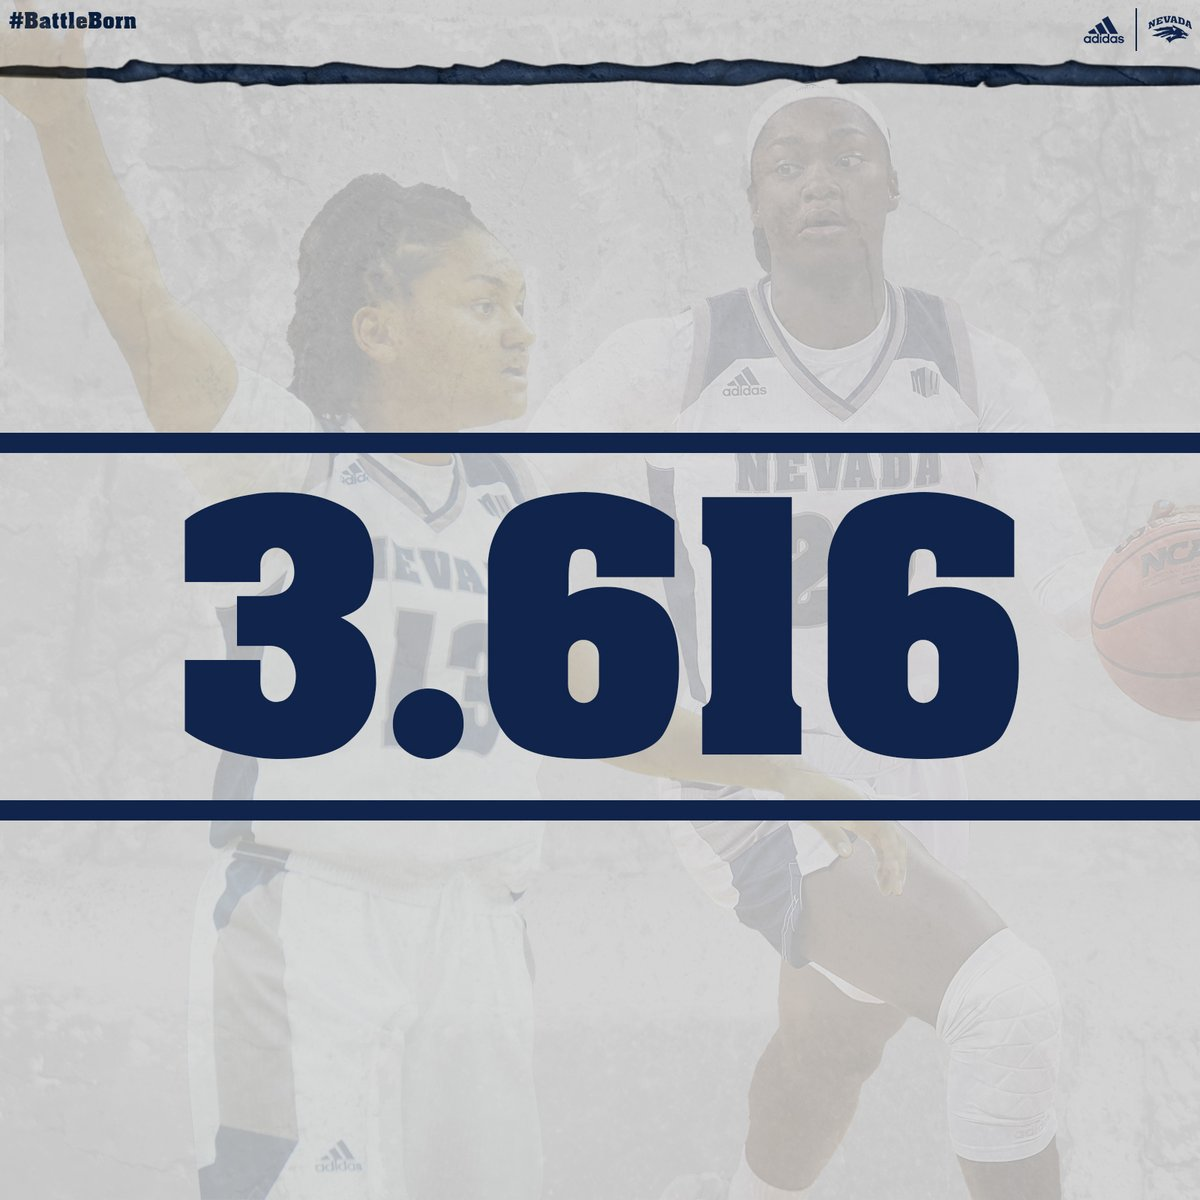 Shout out to our student-athletes who turned in on in the classroom (and at home) this past semester! 📚   #BattleBorn // #RunWithUs https://t.co/NiGcaB9NkR